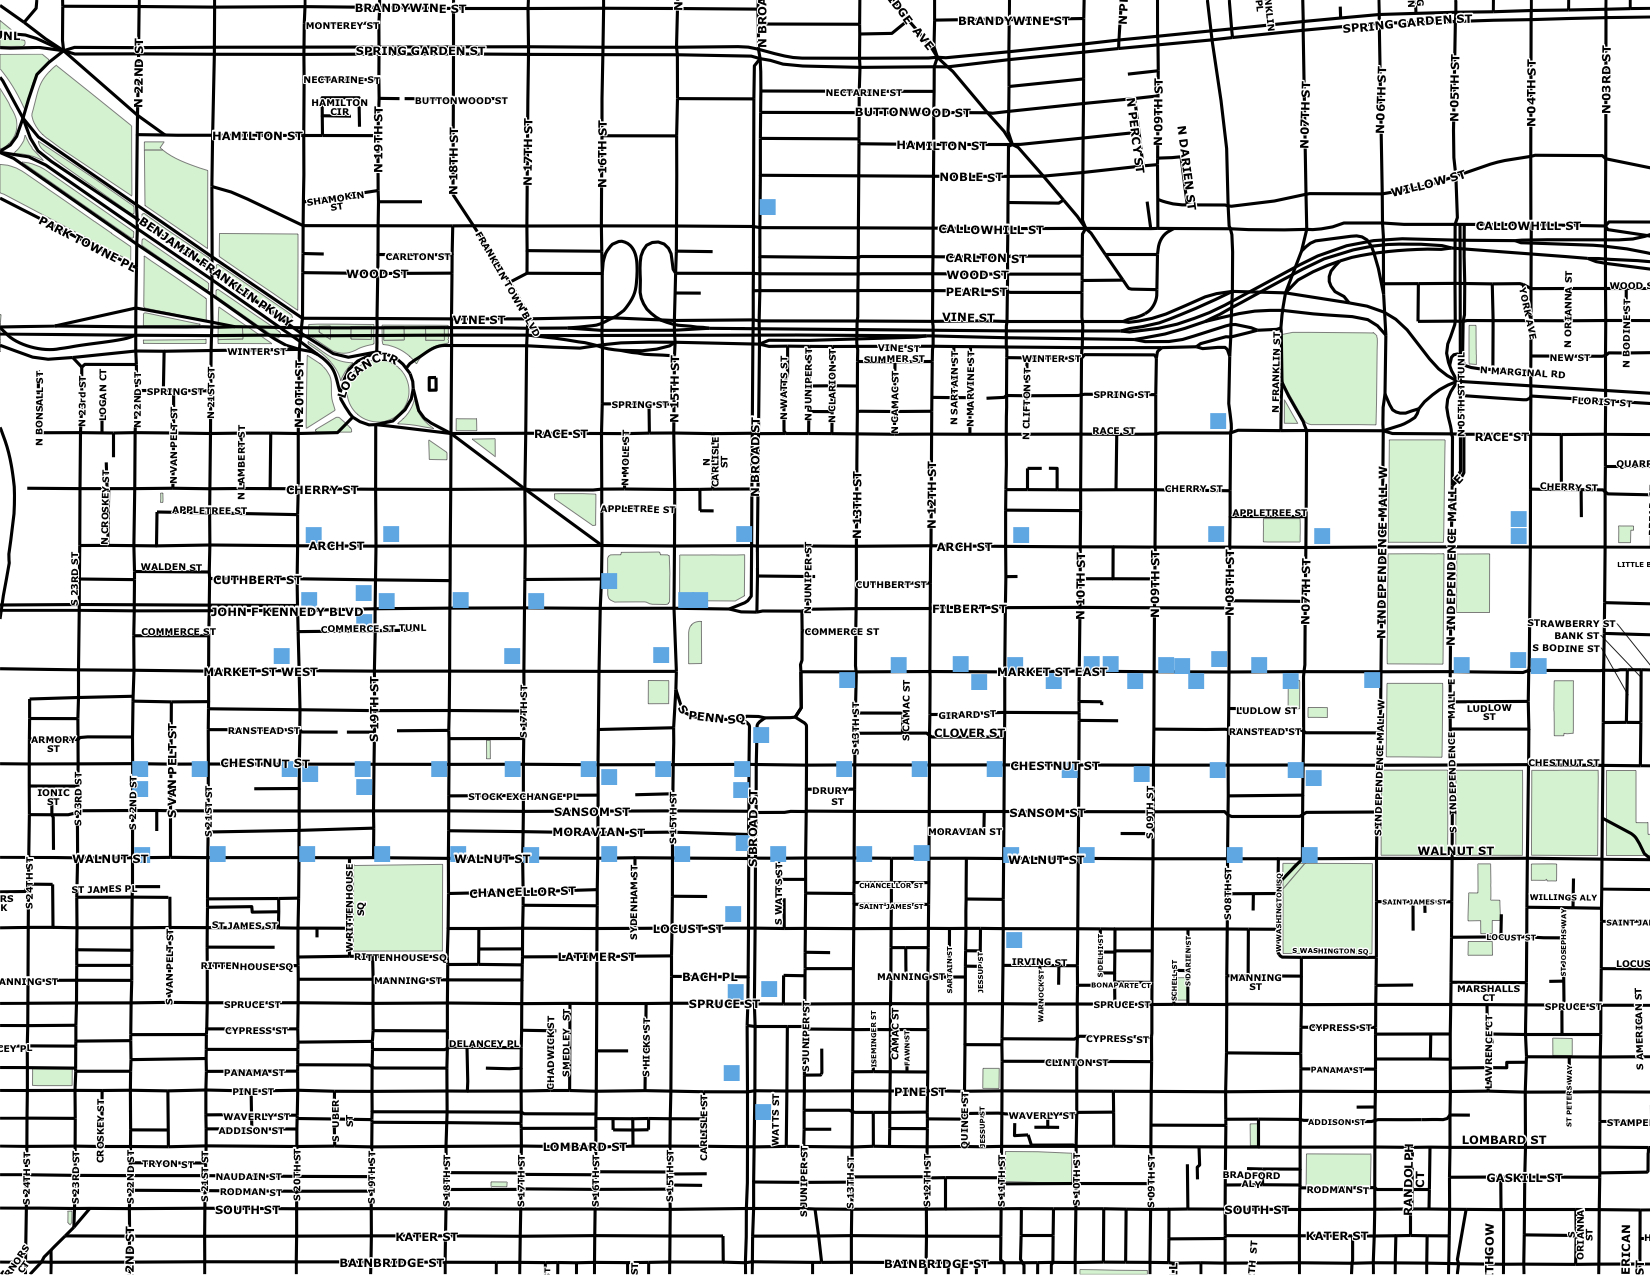 The blue squares show which bus shelters have Center City District route maps